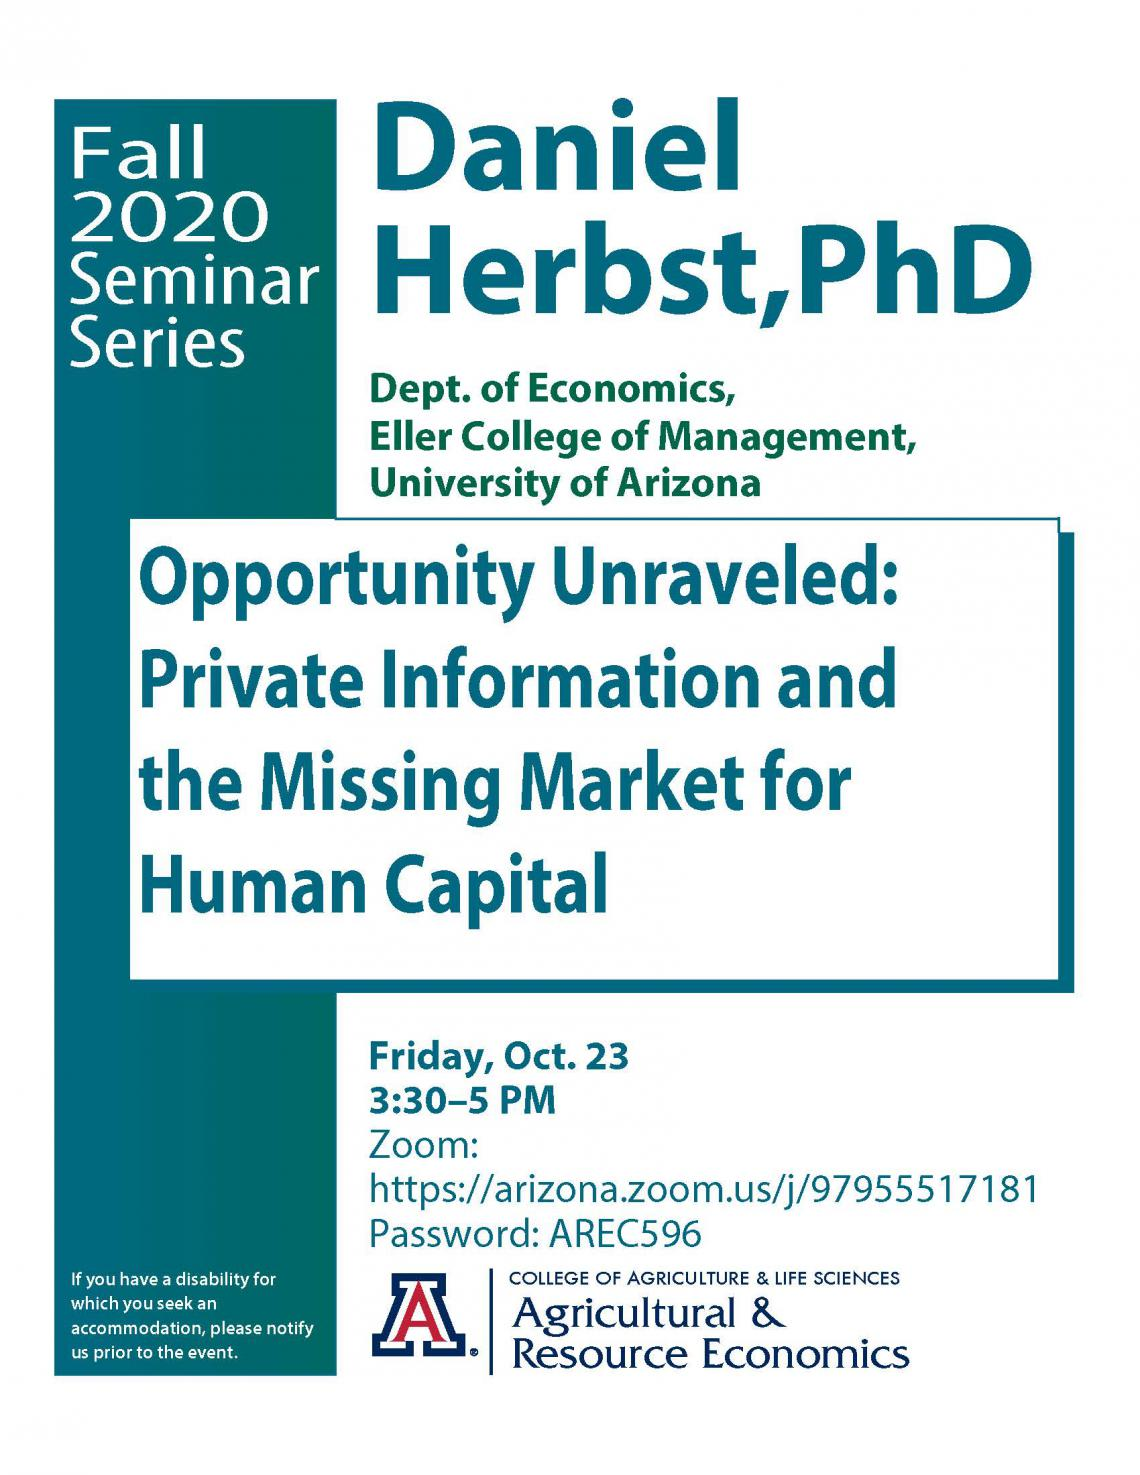 Flyer image for seminar talk titled: Opportunity Unraveled: Private Information and the Missing Market for Human Capital